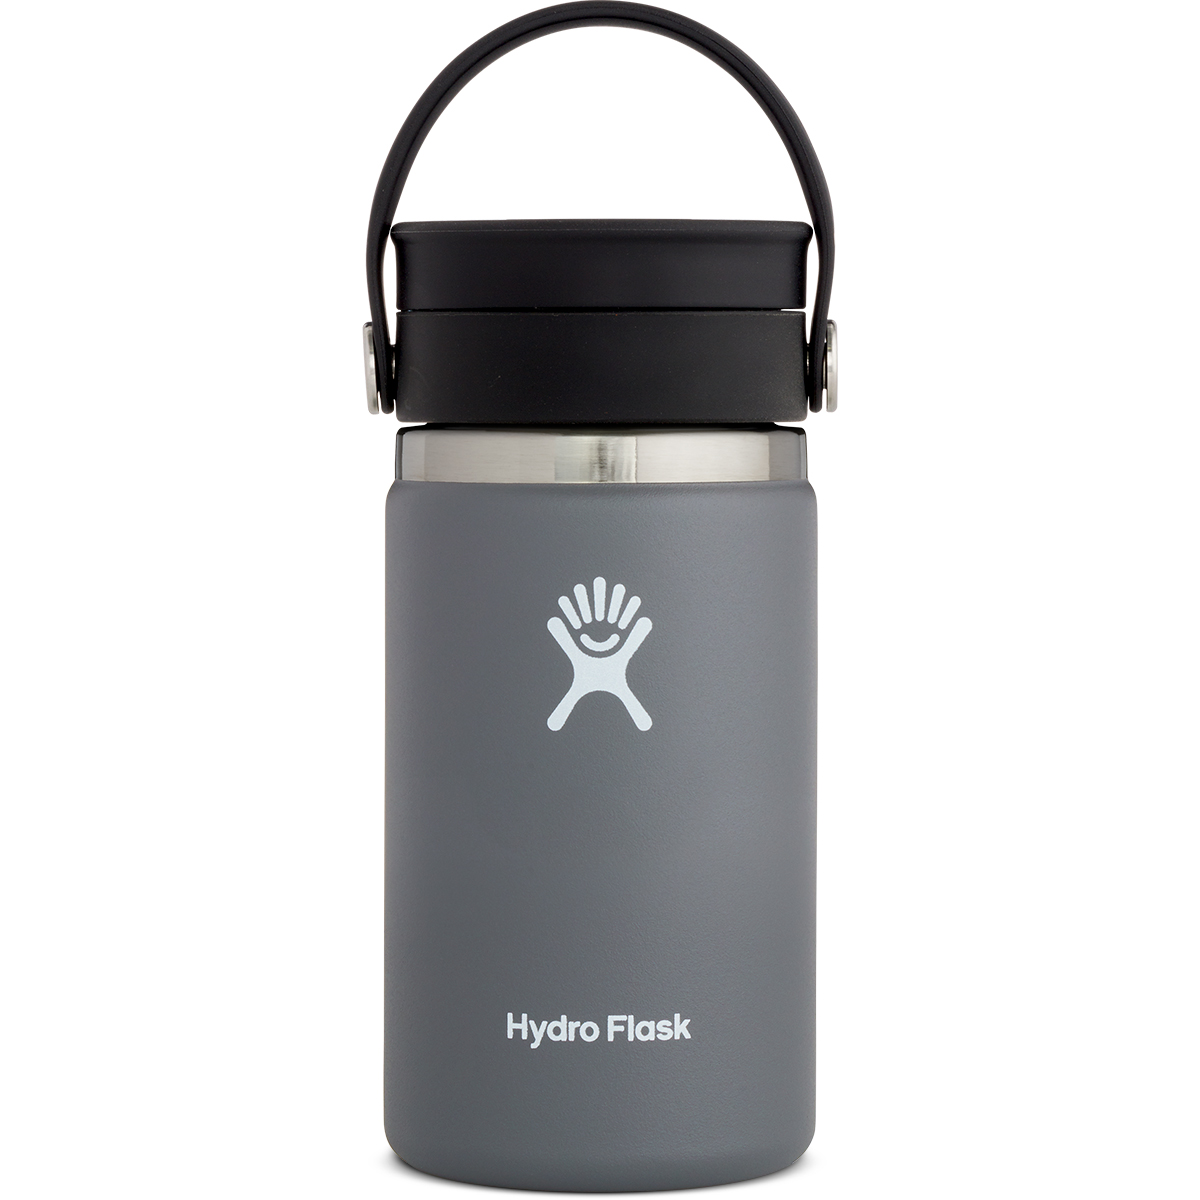 Hydroflask 12 Oz. Coffee Flask